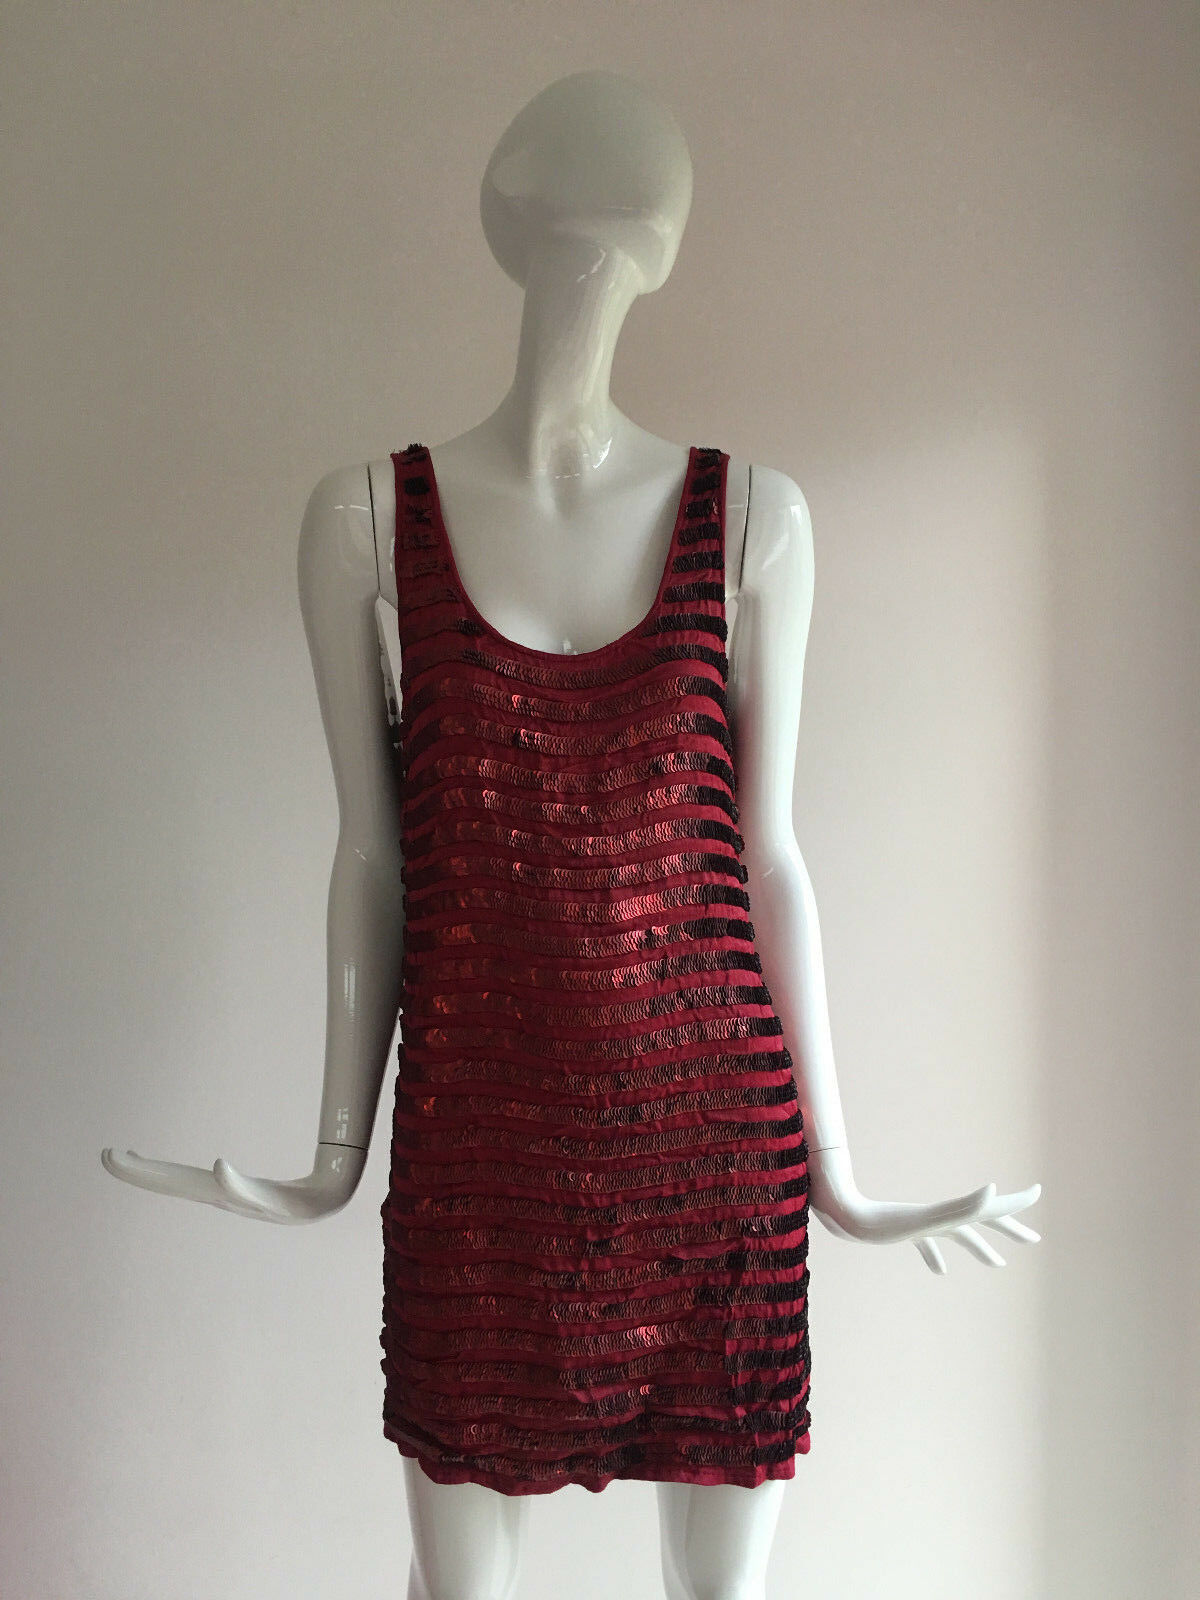 French Connection Red Serpent Sequin Party Dress Size 8 BNWT BNWT BNWT  RARE d6a1a2